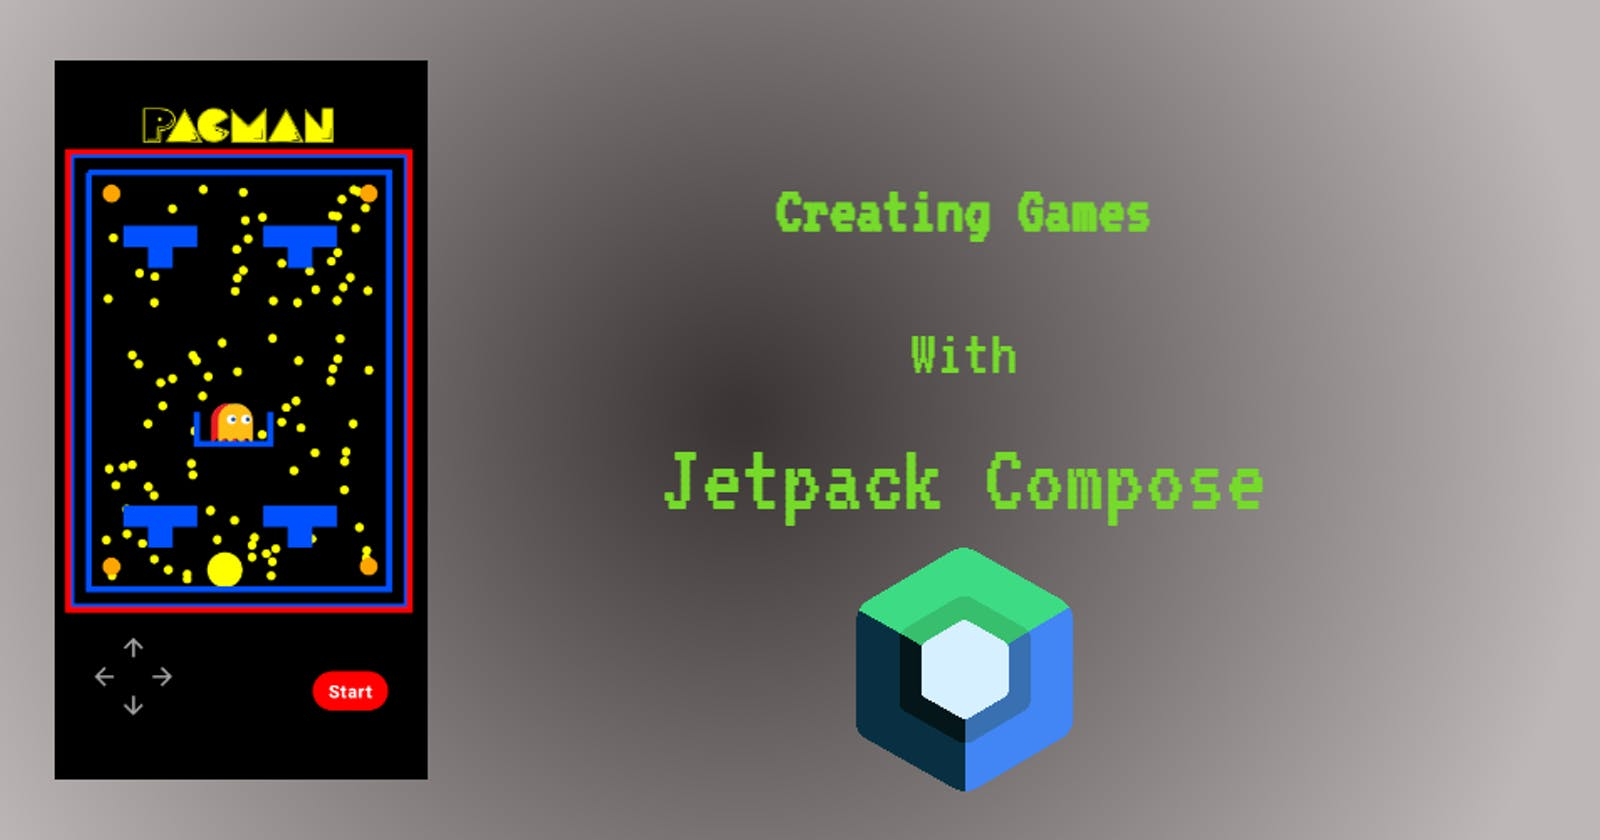 My First Attempt at creating a game with Jetpack Compose